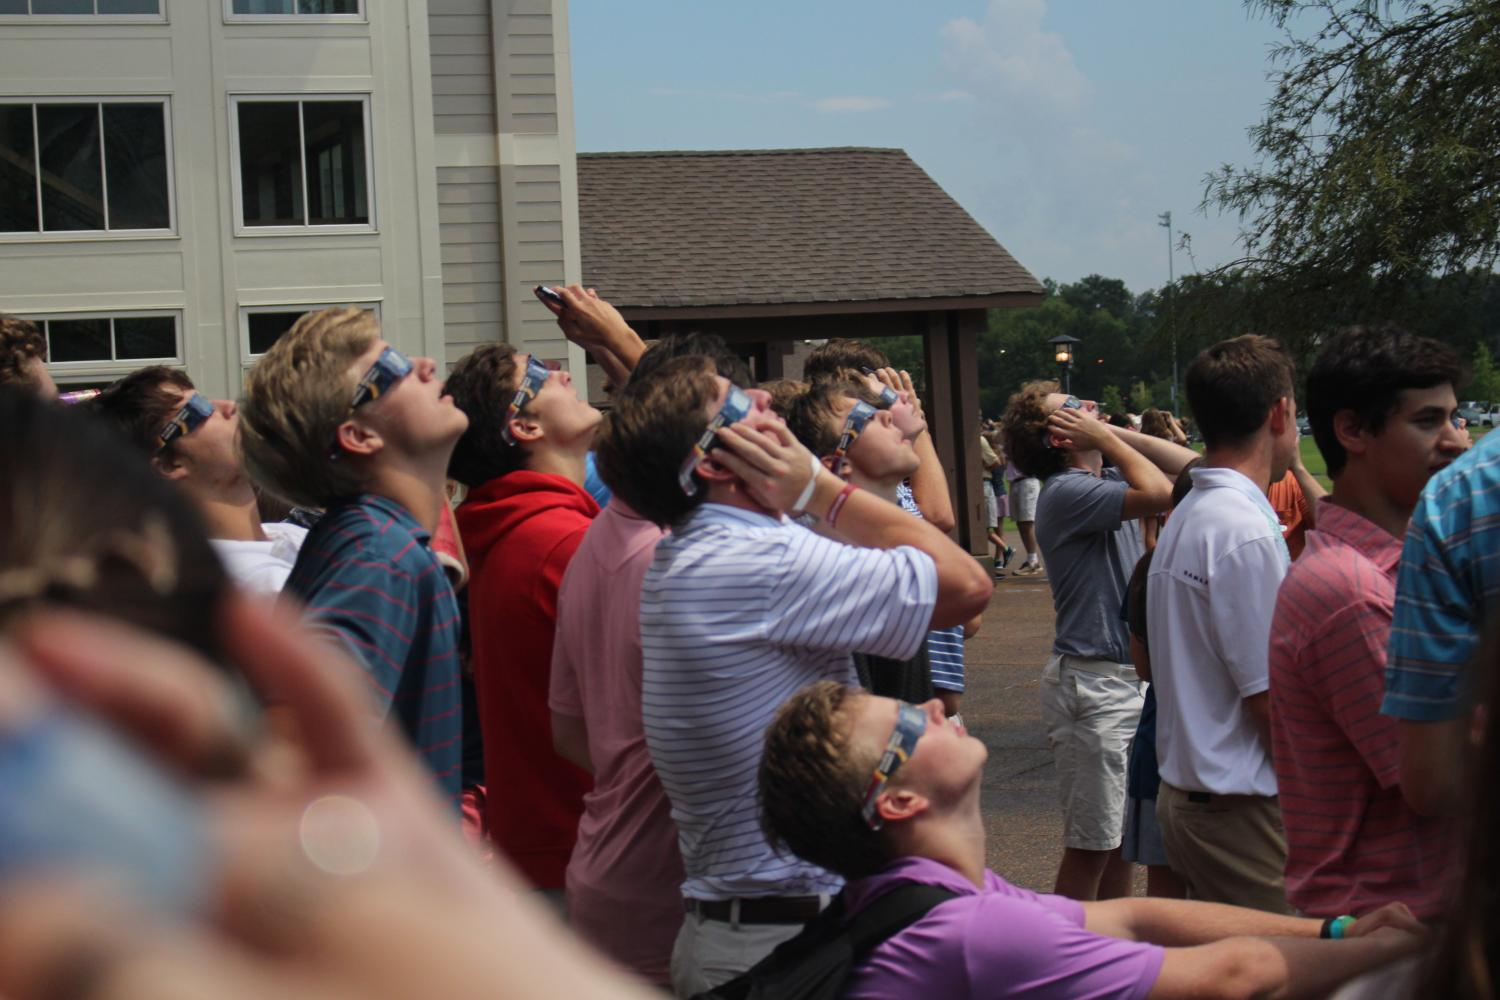 A+cluster+of+high+school+boys+gathers+to+view+the+eclipse+through+their+glasses.